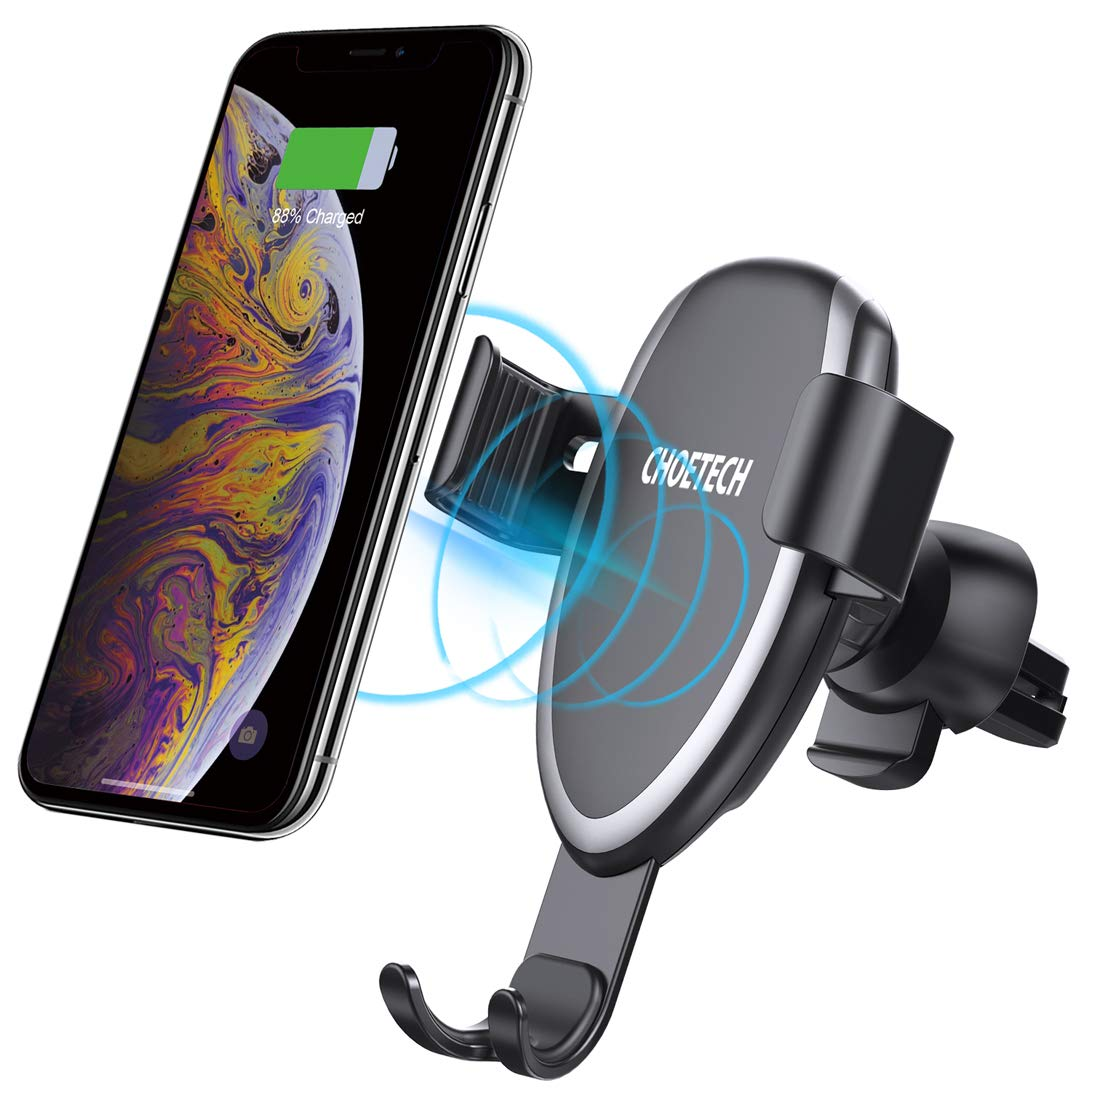 CHOETECH Wireless Car Charger, Fast Gravity Wireless Car Charger Holder 7.5W Compatible with Apple iPhone XR/XS/XS Max/X/8/8 Plus,10W for Galaxy Note 9/S9/S9+,S8/S8+/Note 8, 5W for Huawei Mate 20 pro Shenzhen DAK Technology Co. Limited CA-T536S